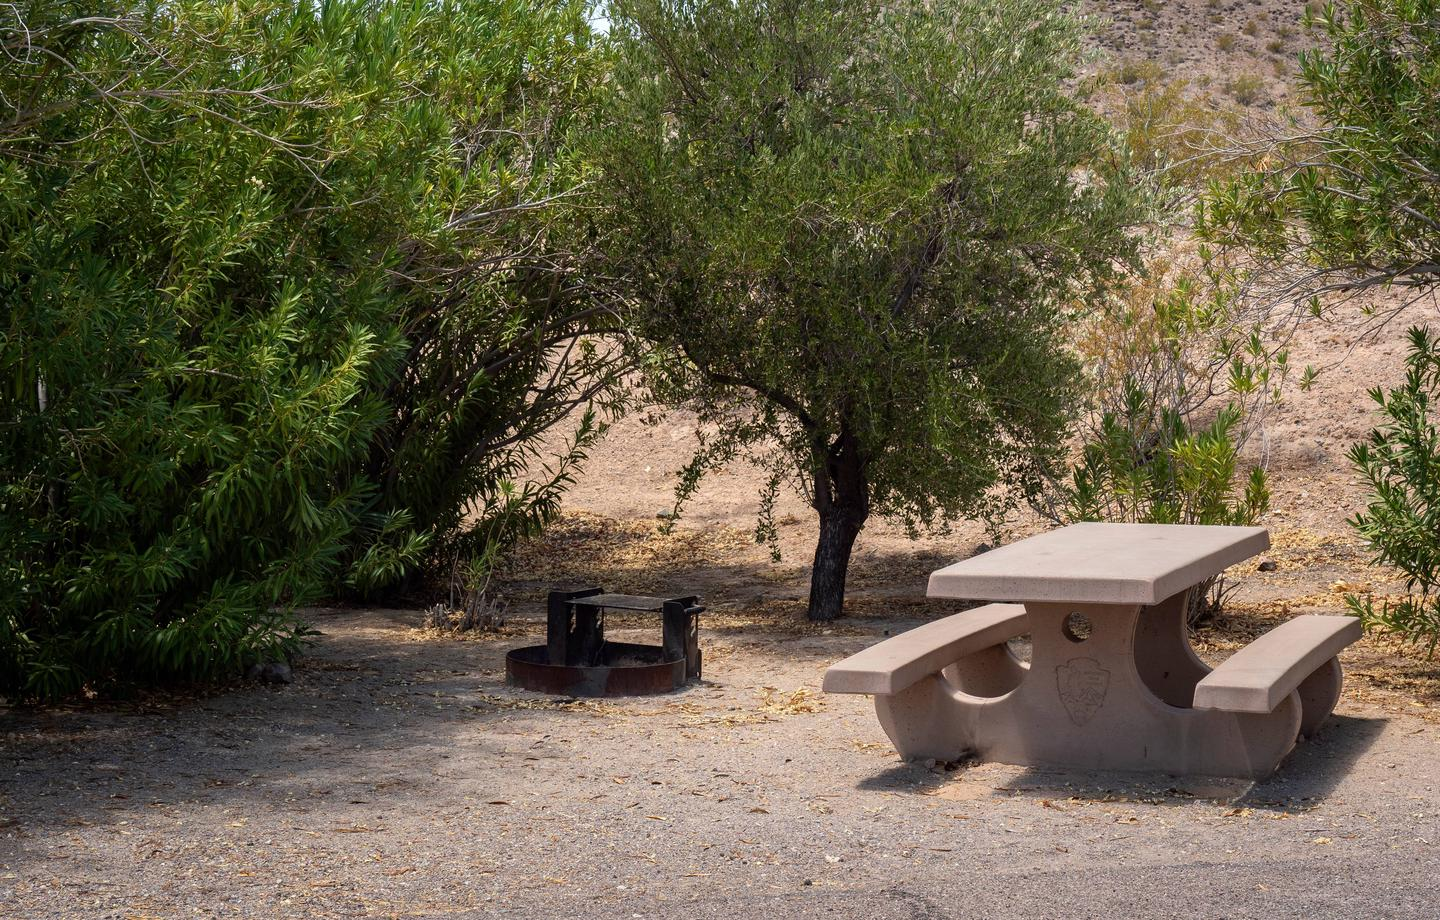 Campsite located in a desert setting 2Callville Bay Campground